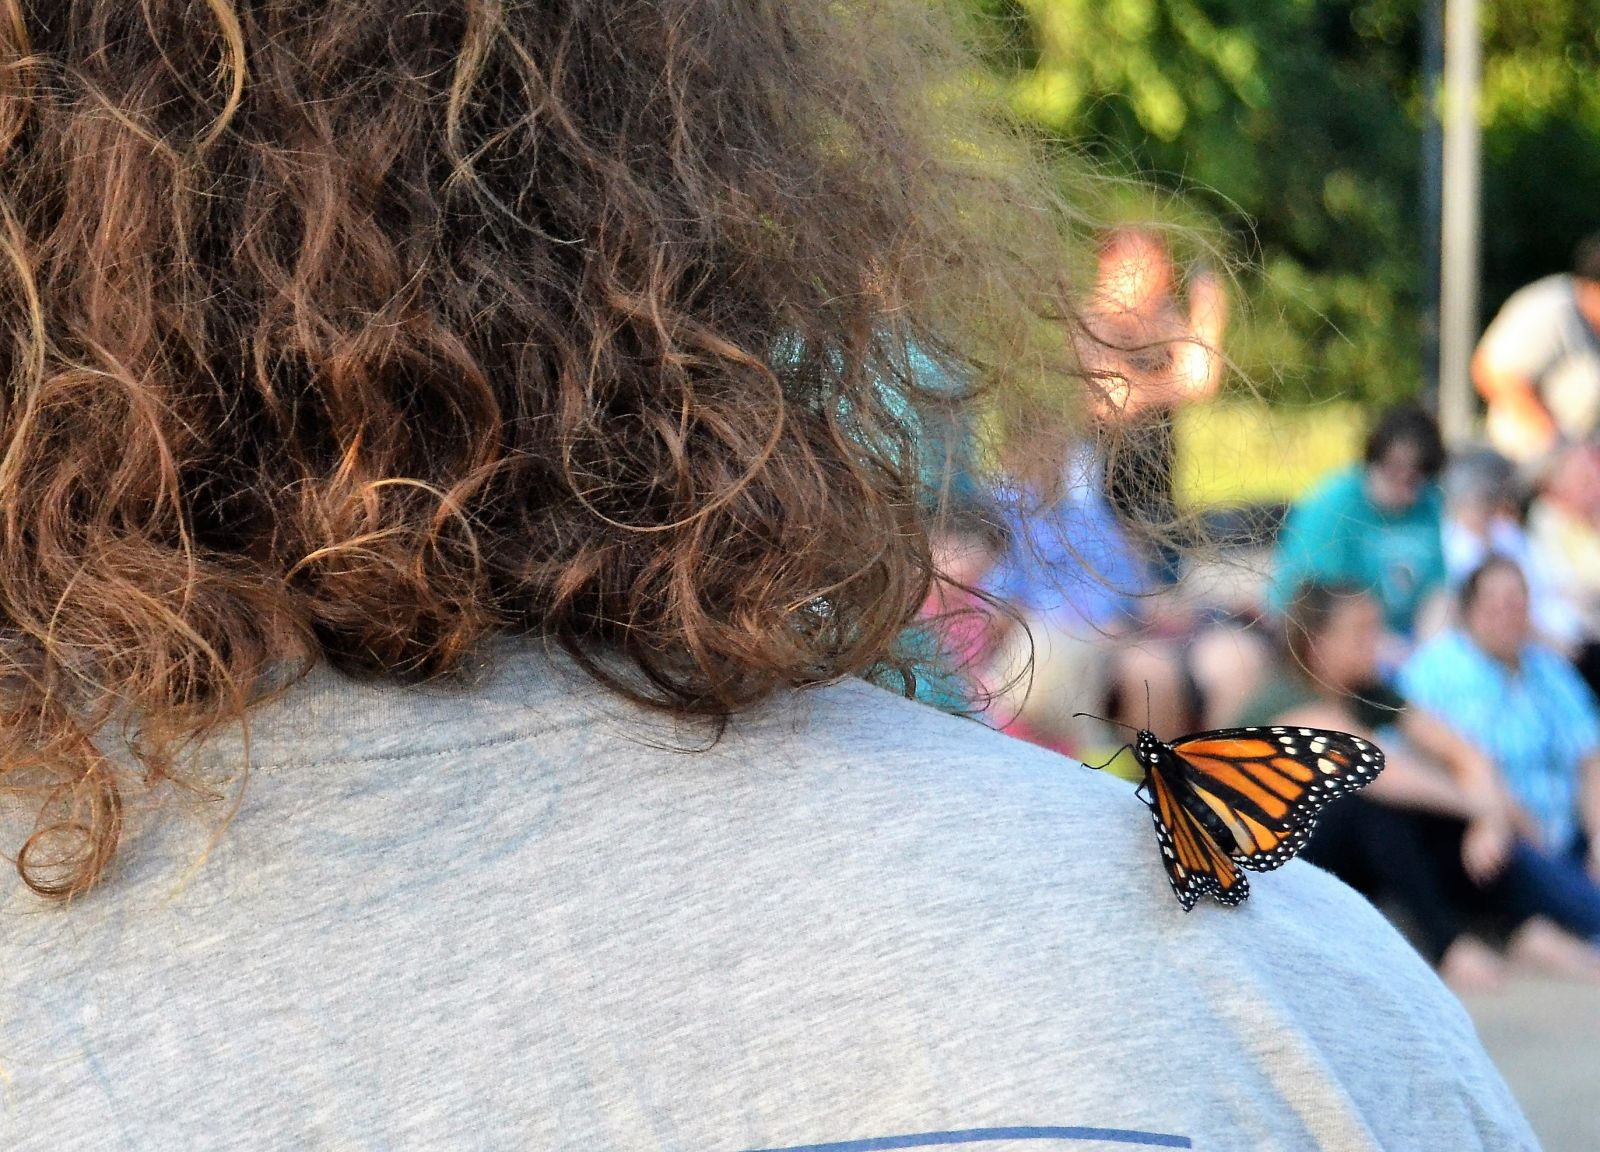 A butterfly alights on the shoulder of an attendee at Thursday's Cathy B. Novinger Butterfly Release for Ovarian Cancer at the Statehouse. (Photo/Travis Boland)